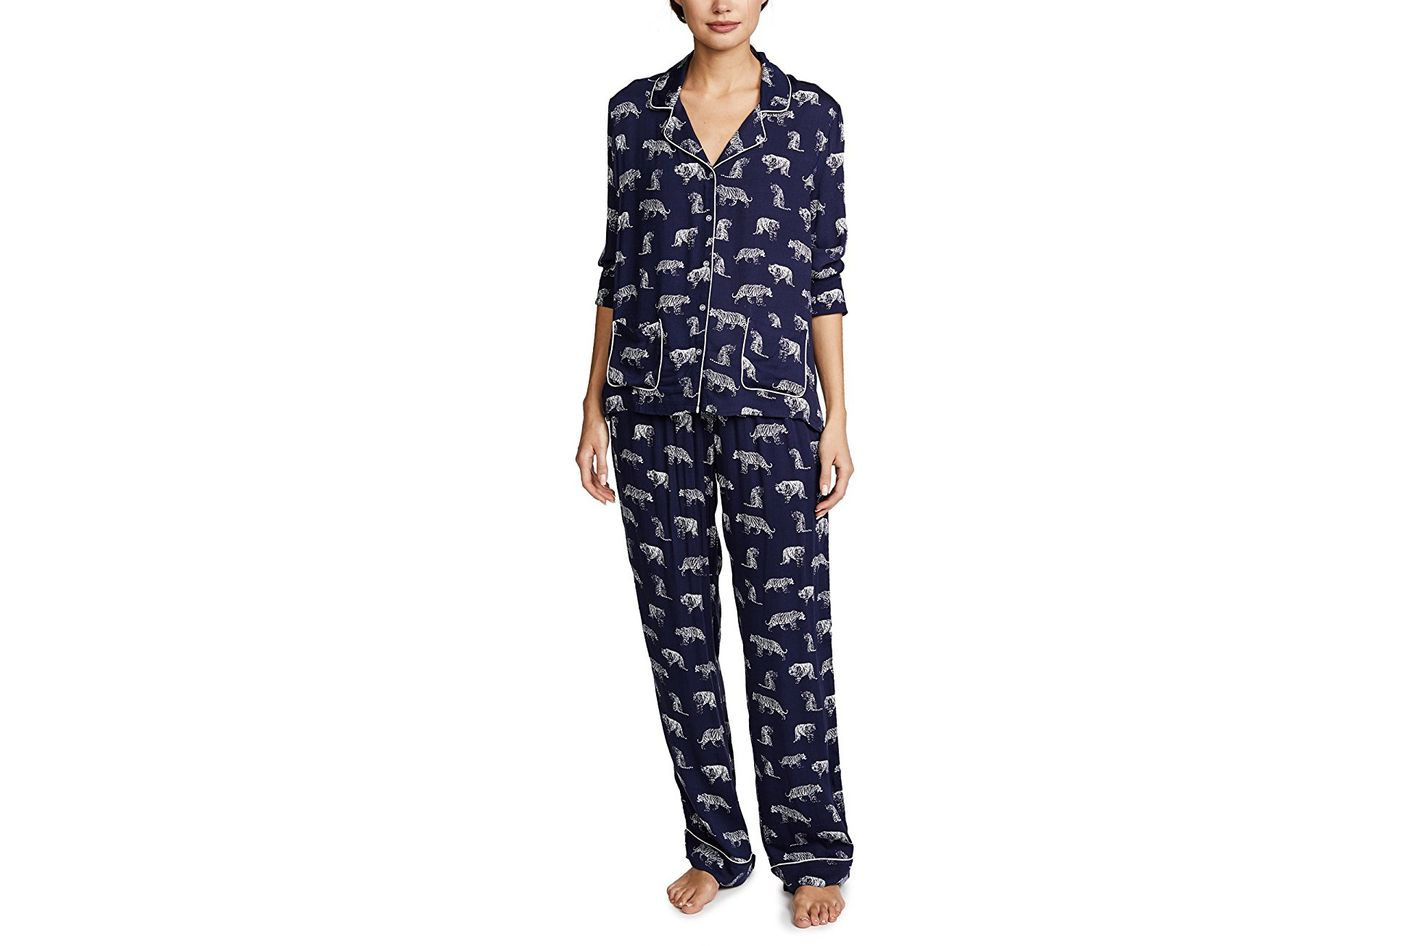 53367ff8b4c2 Splendid Gentle Tiger PJ Set